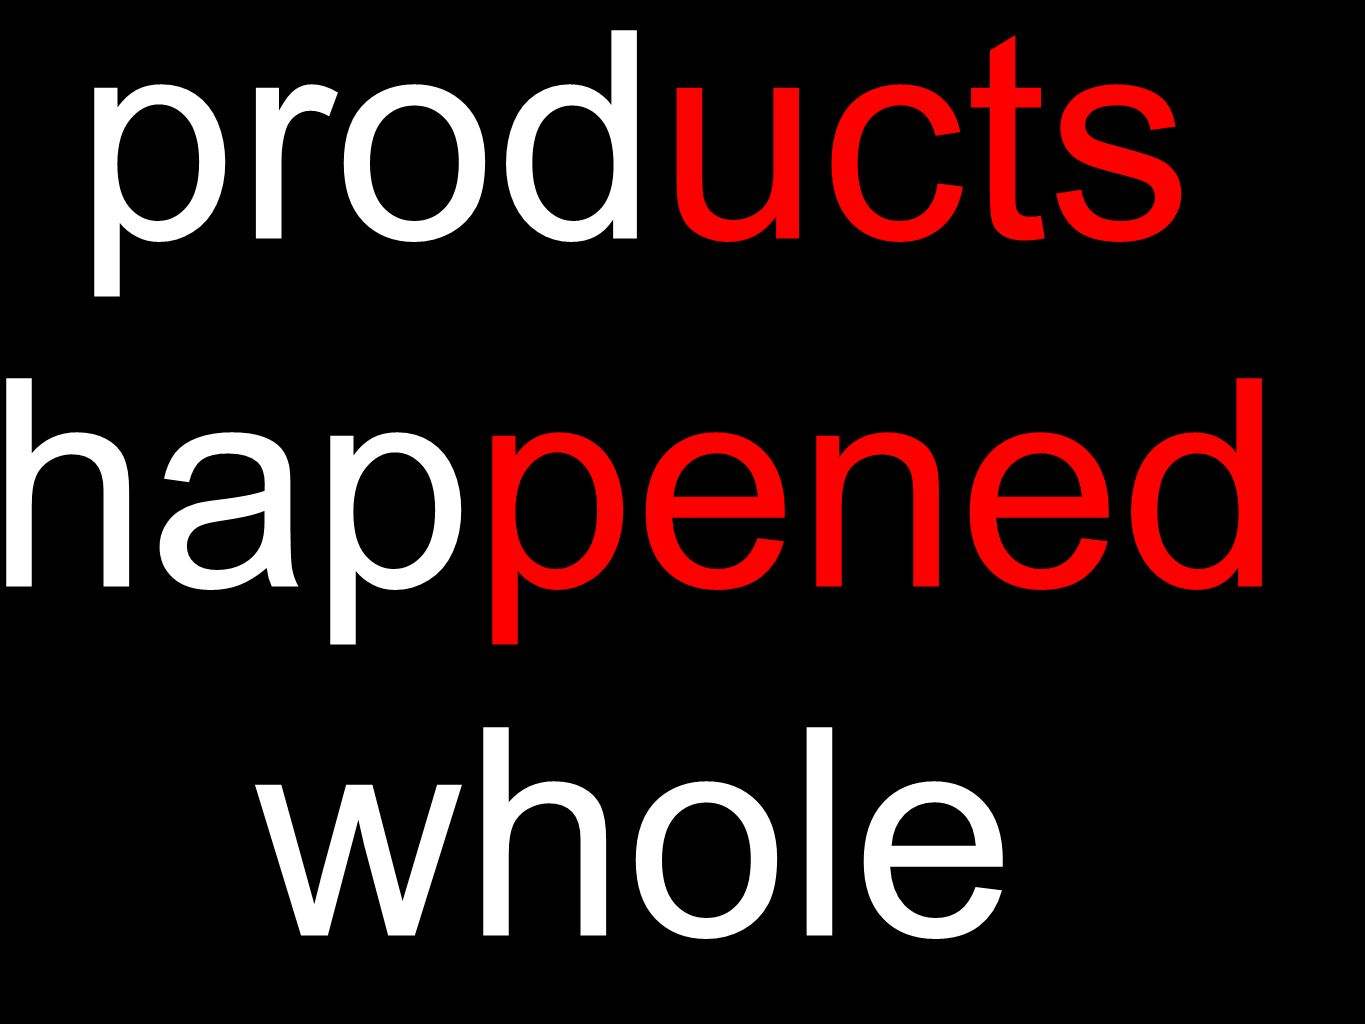 products happened whole